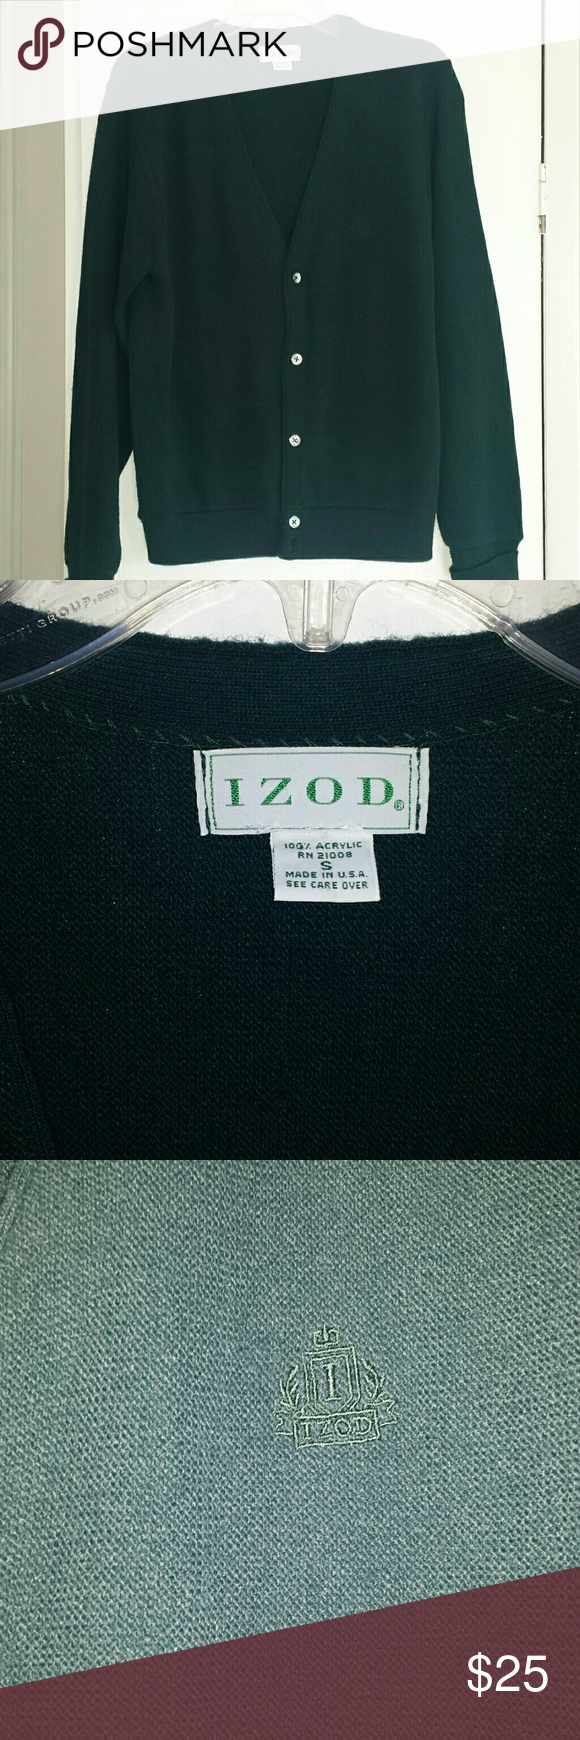 Izod Vintage Men's Cardigan Great forest green Izod sweater.  Nice condition with a little piling on the one side as shown.  V-neck button up with no stains. Izod Sweaters Cardigan